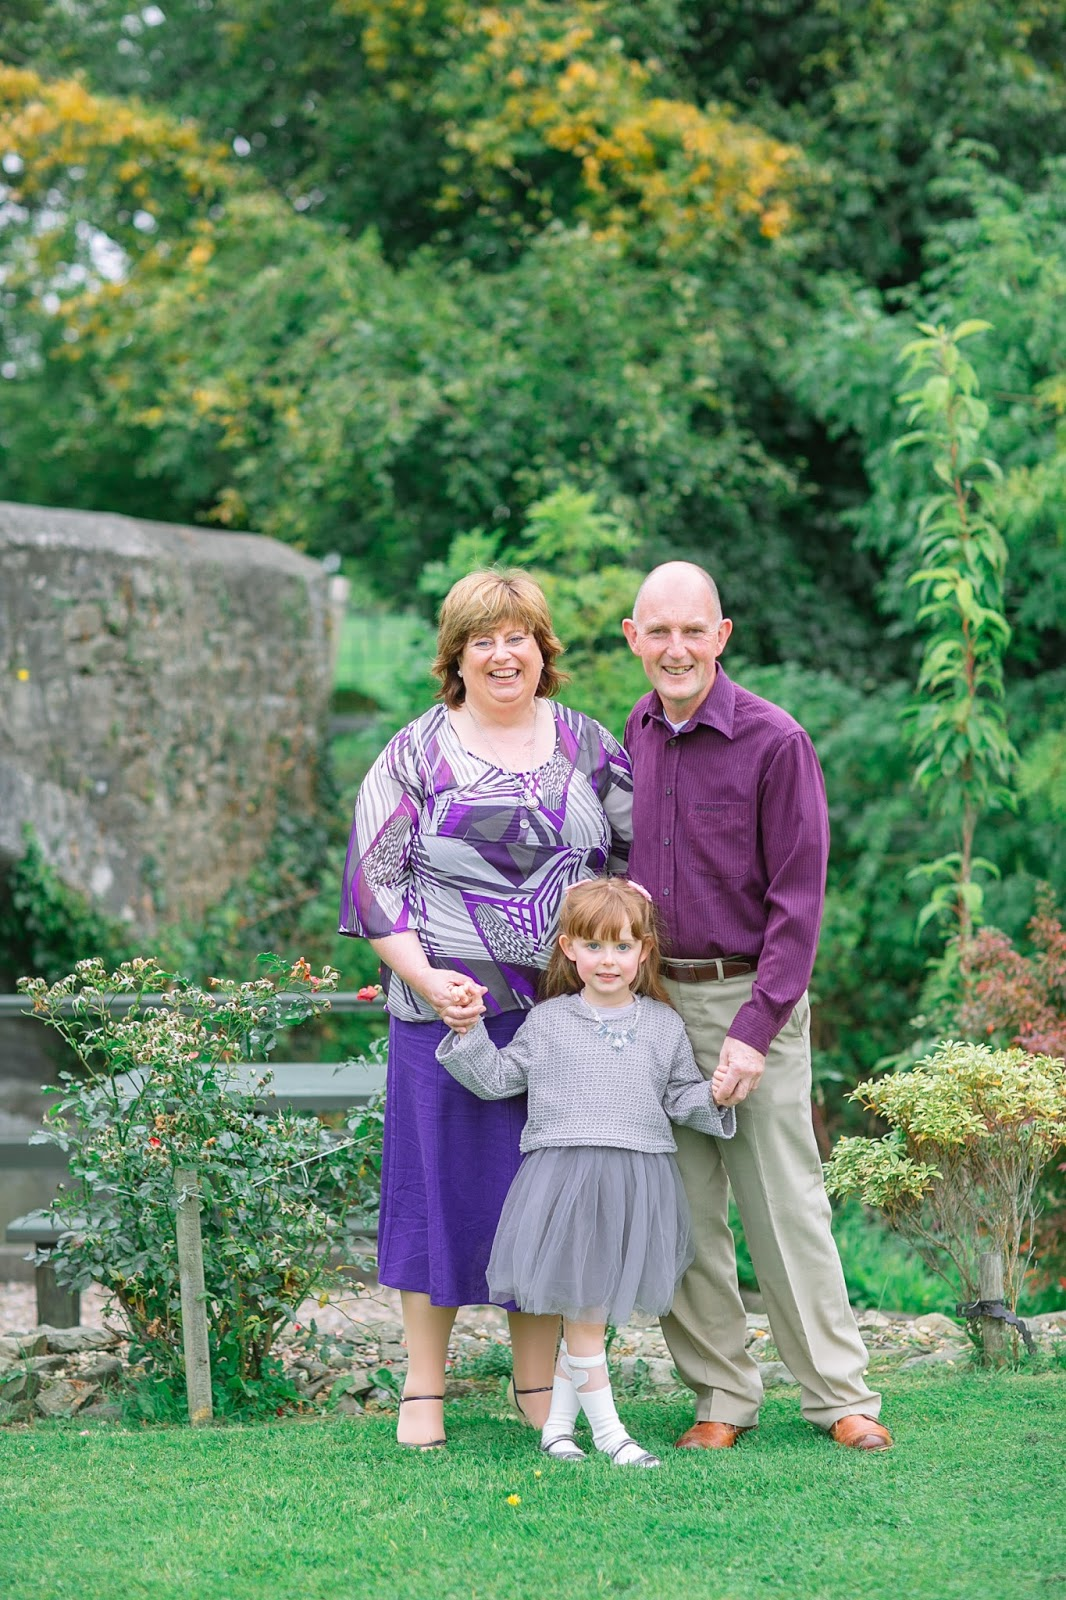 Family Shoot in Back Garden